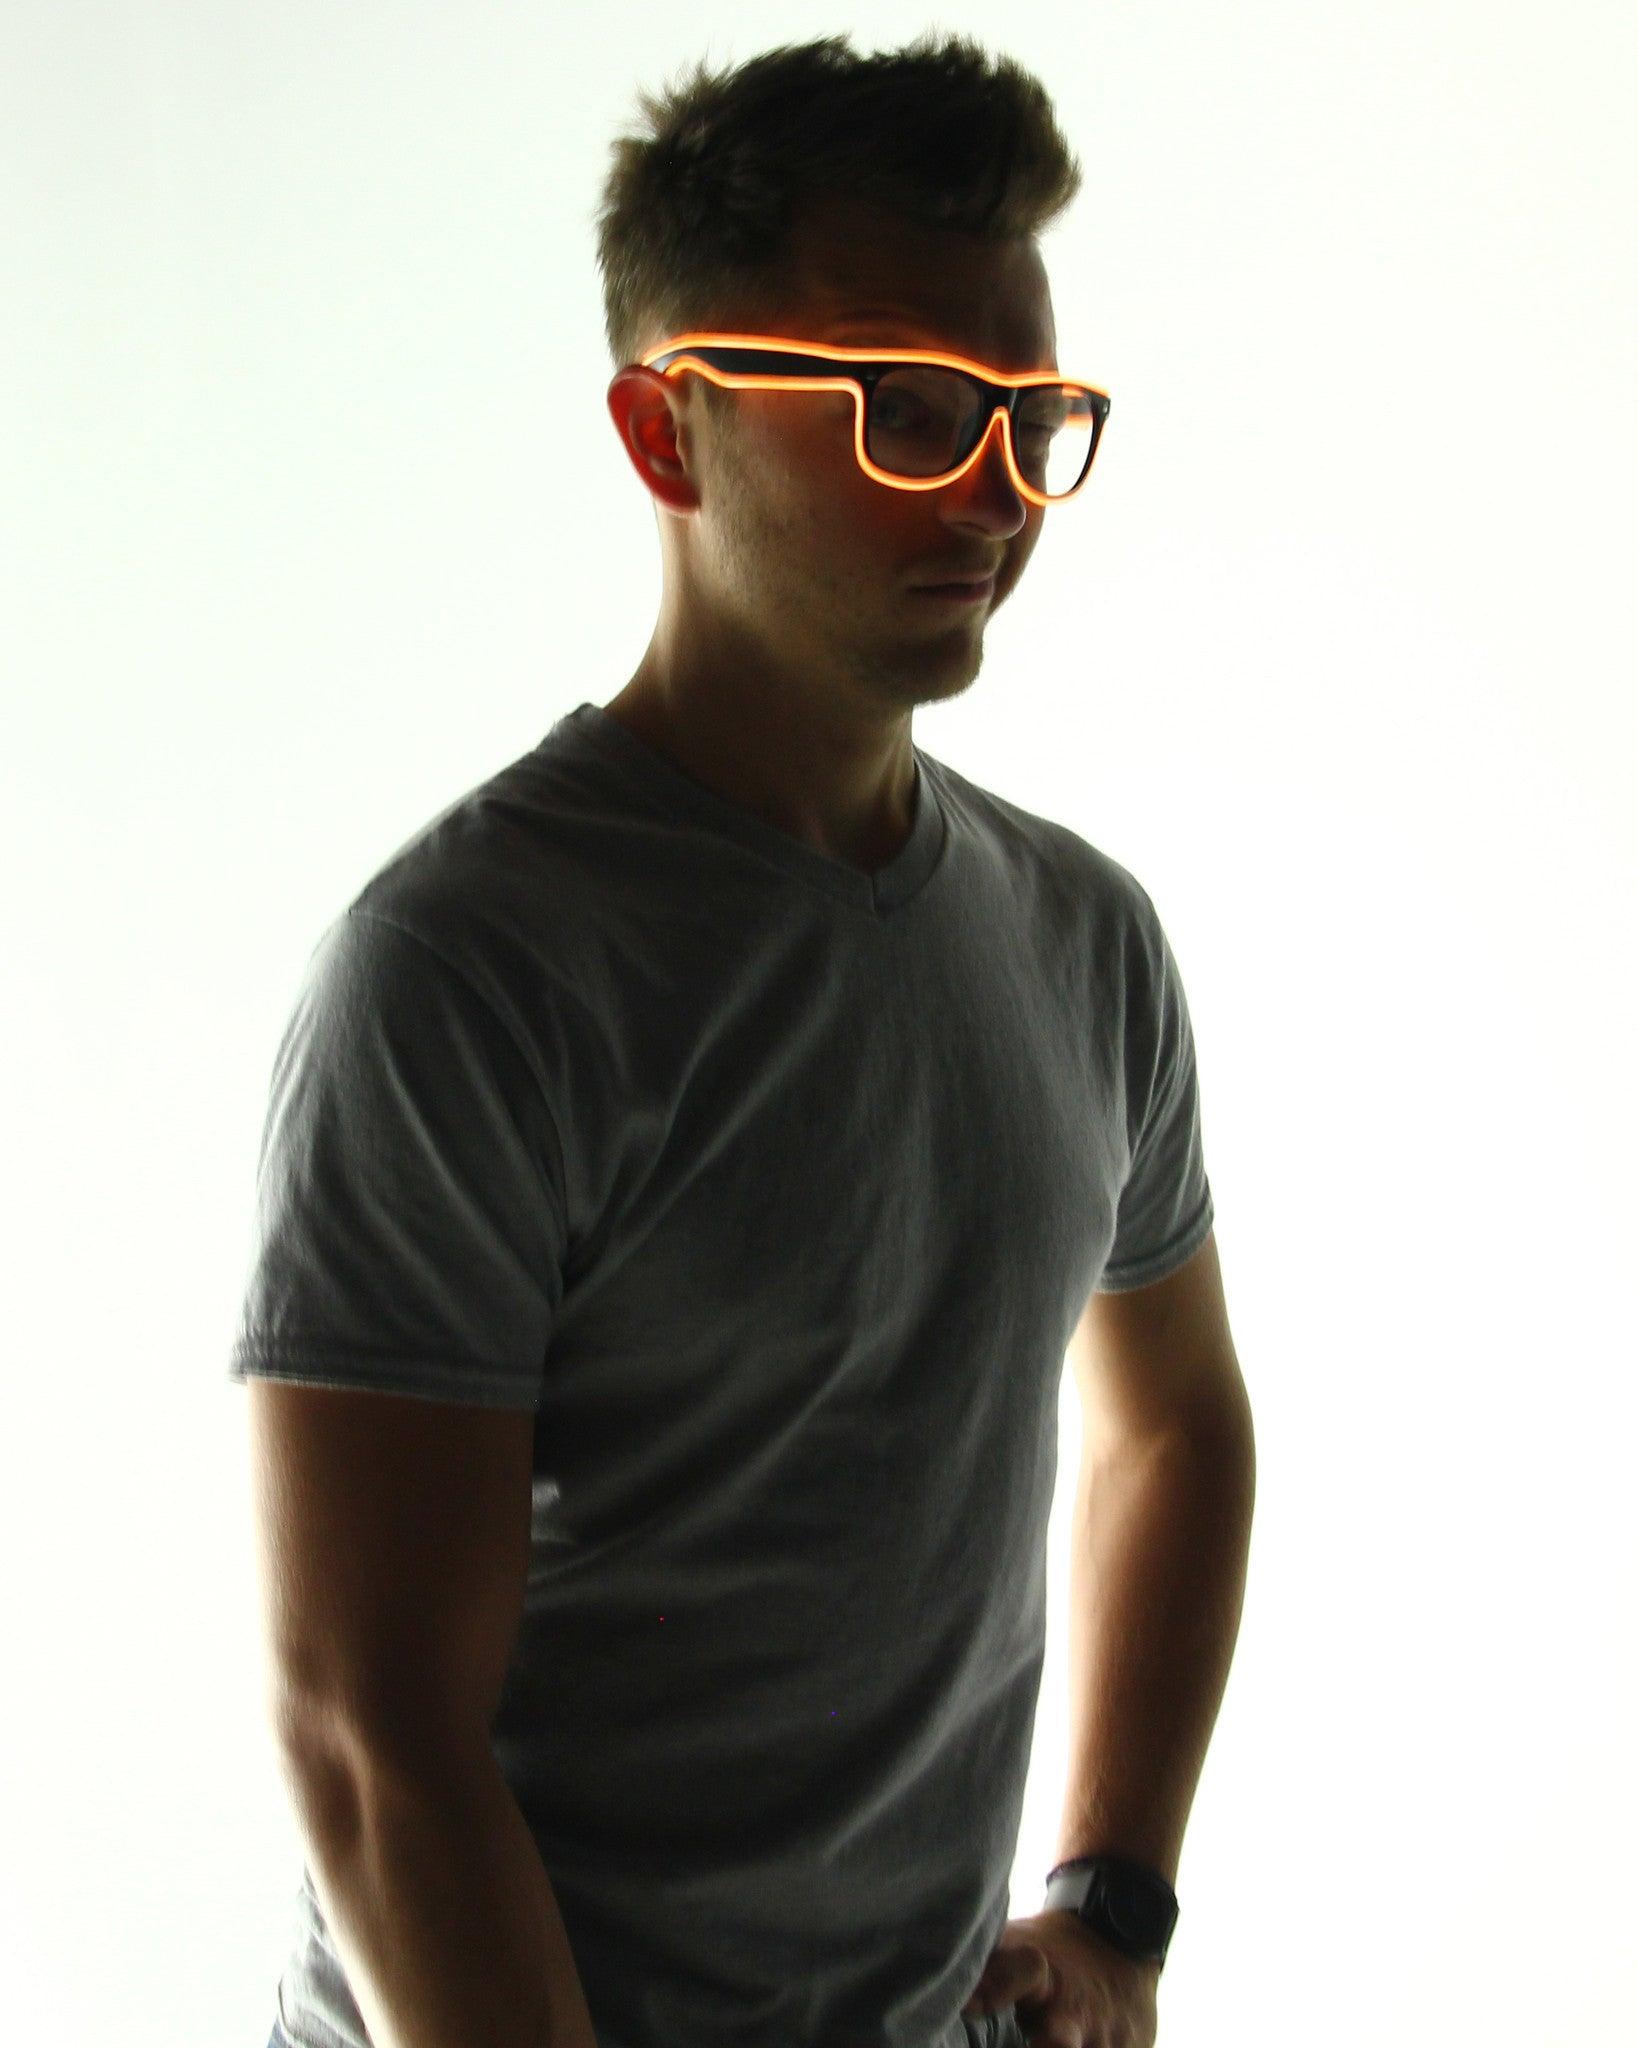 Light Up Glasses - Electric Styles | World's Number 1 Light Up Shoe Store - {product_type}} - Orange - 11